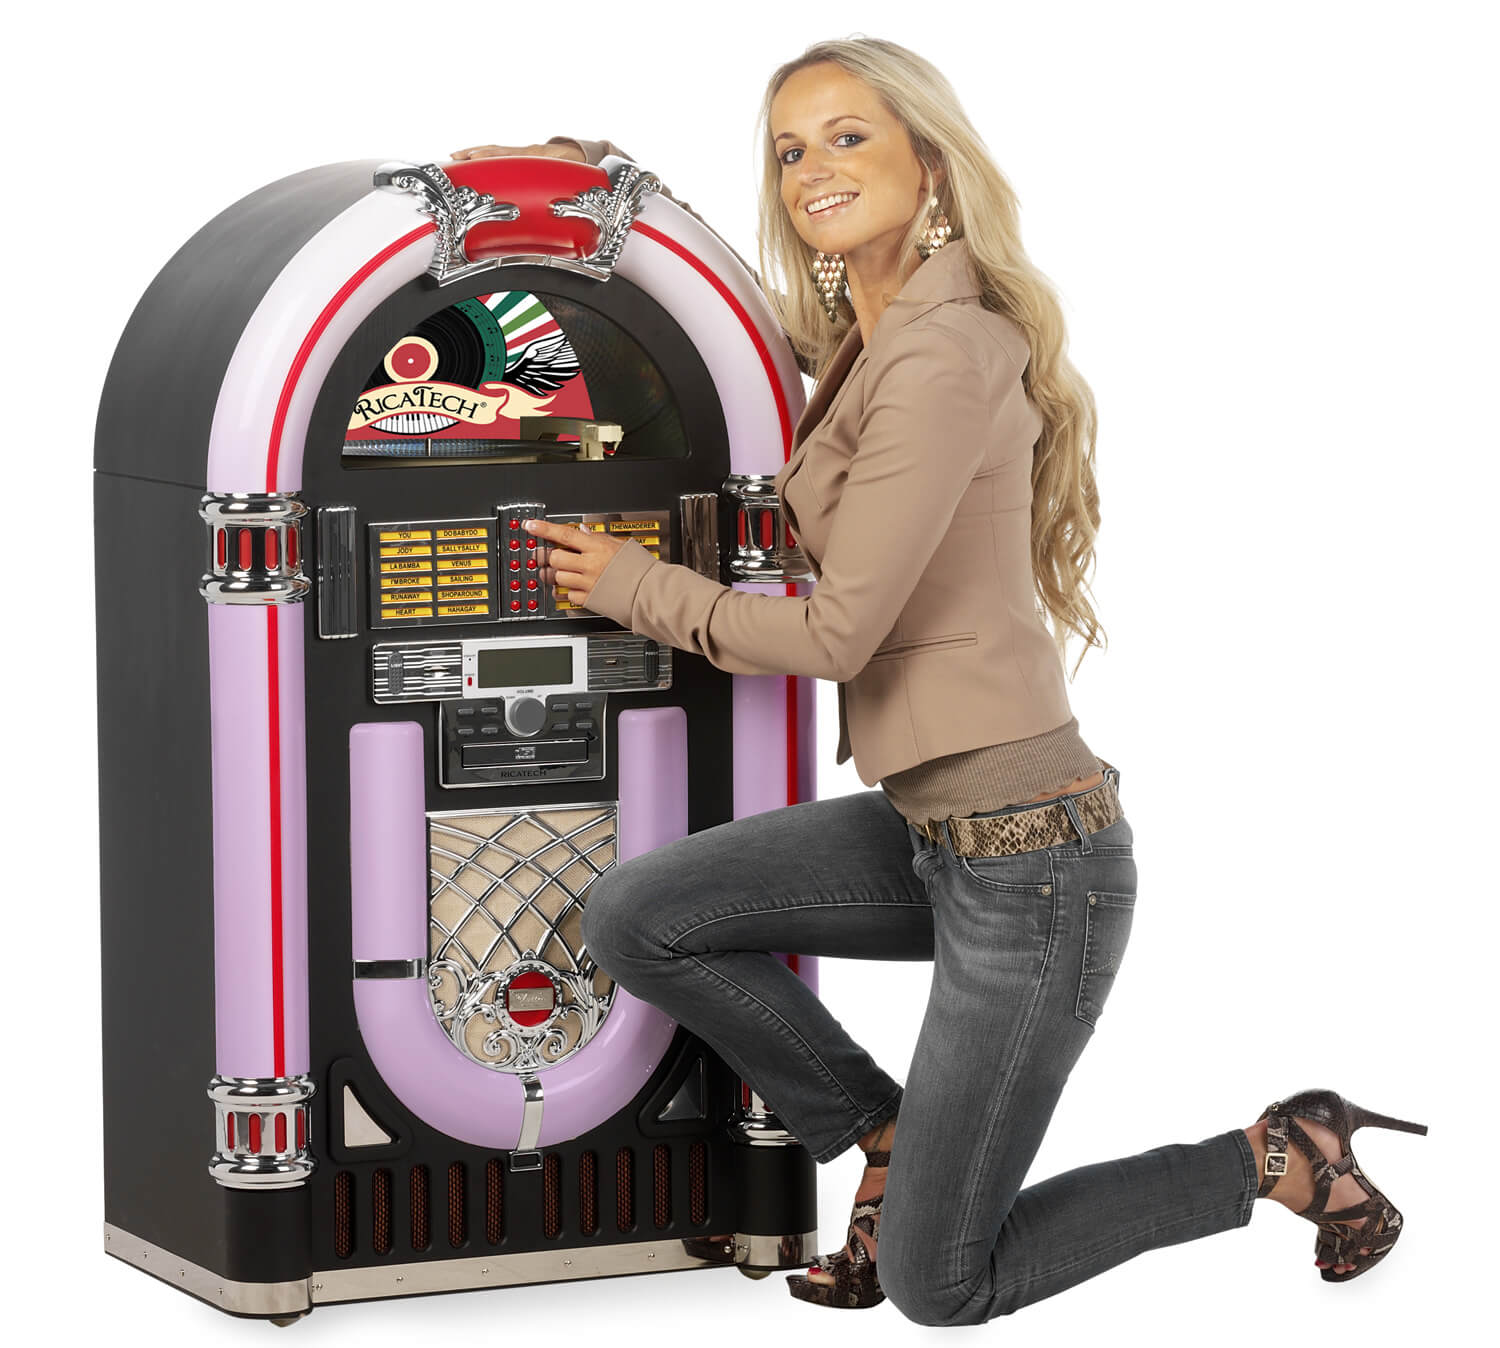 Ricatech Classic Xxl Led Replica Jukebox Rr2000bt